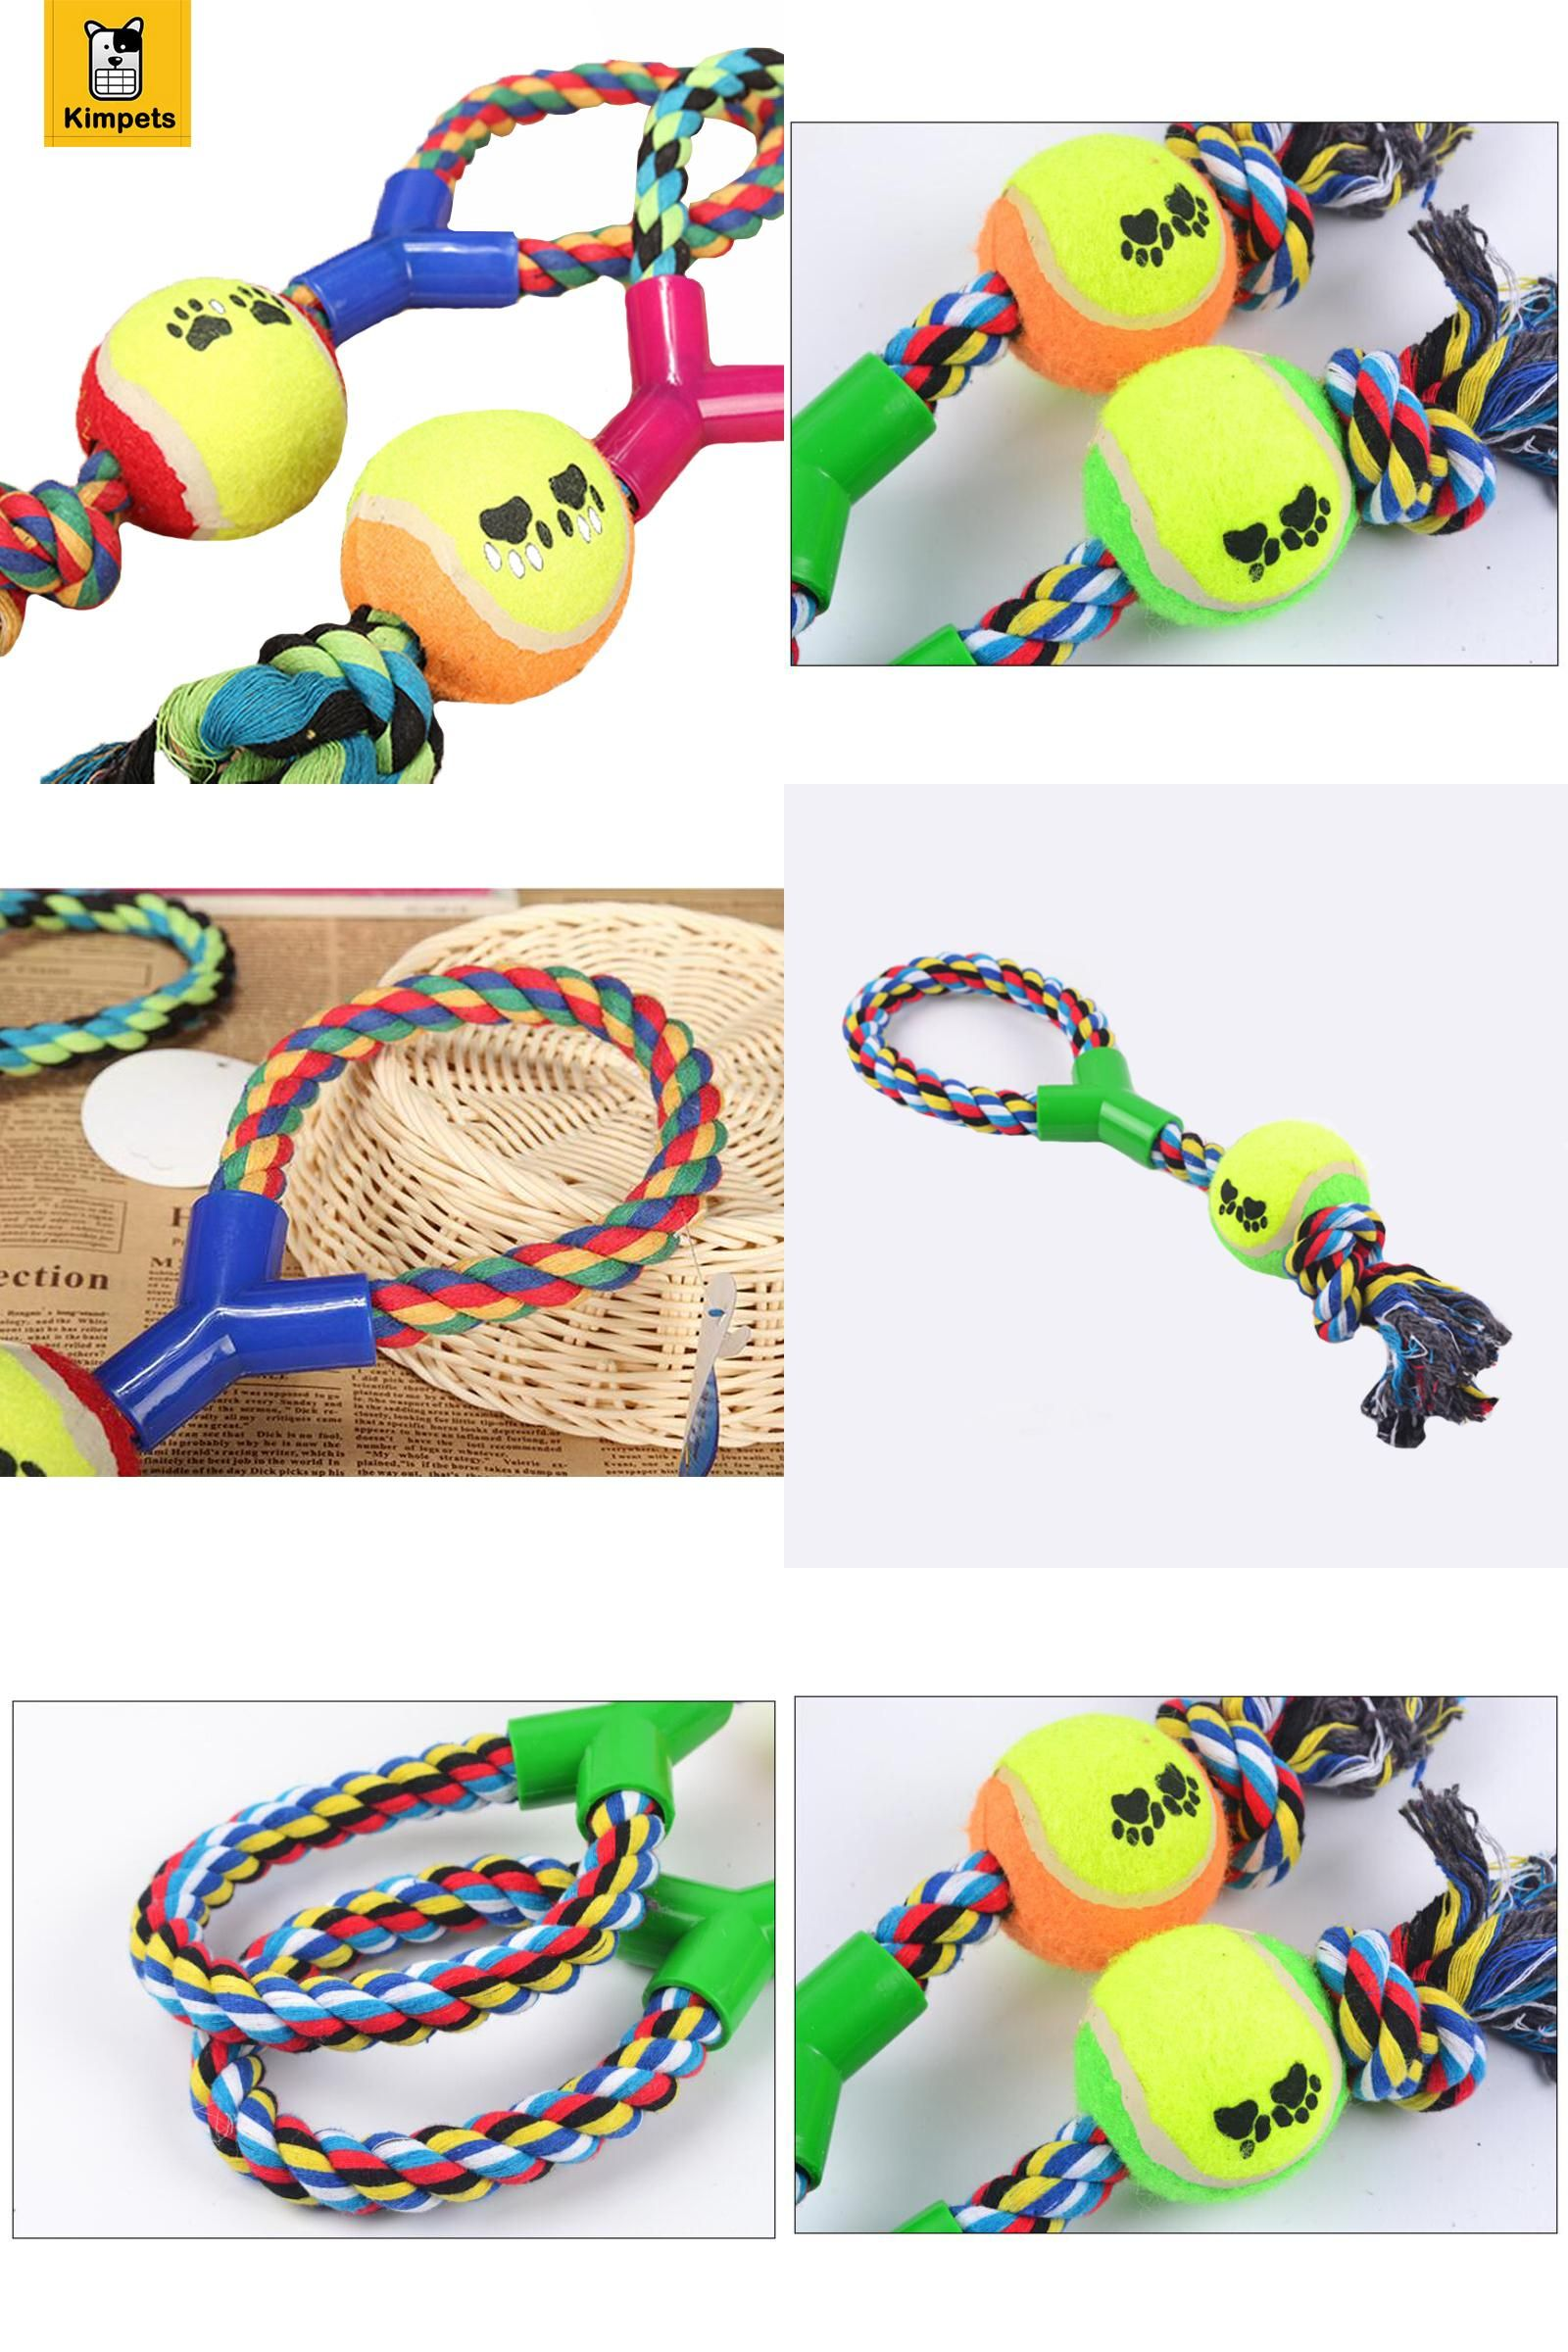 Visit to Buy] Best Chewing Toys for Dogs Ball with Rope Dog Toy